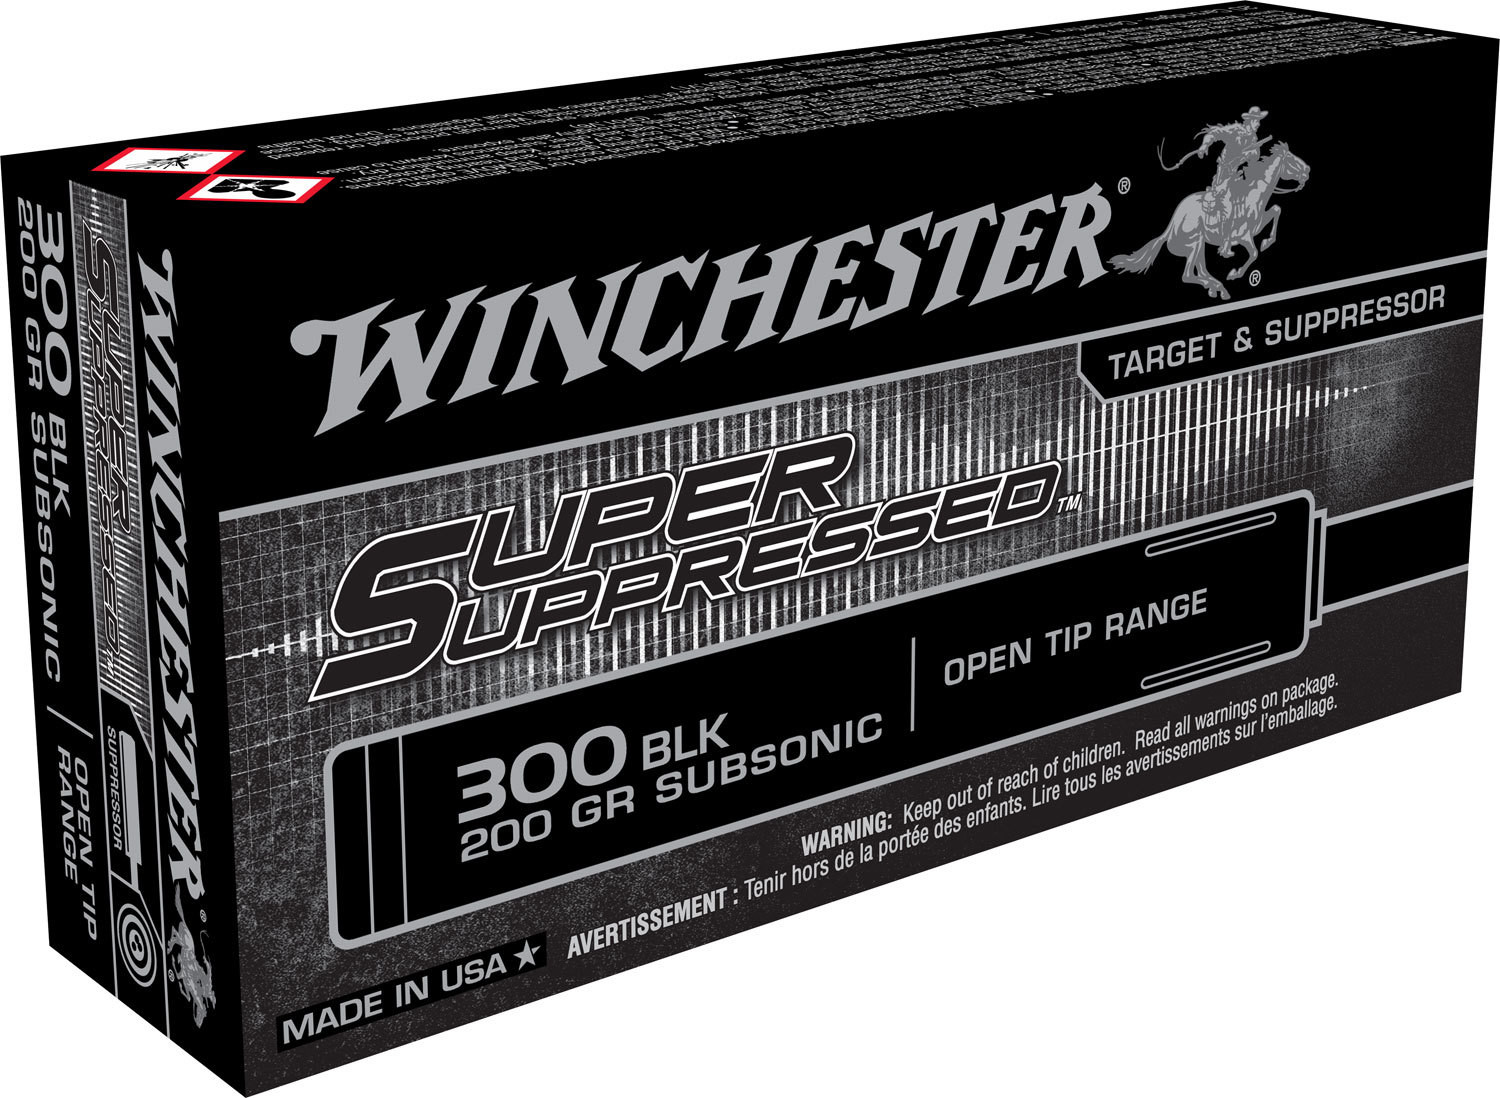 Winchester Ammo SUP300BLK Super Suppressed 300 AAC Blackout/Whisper (7.62x35mm) 200 GR Full Metal Jacket OT 20 Bx